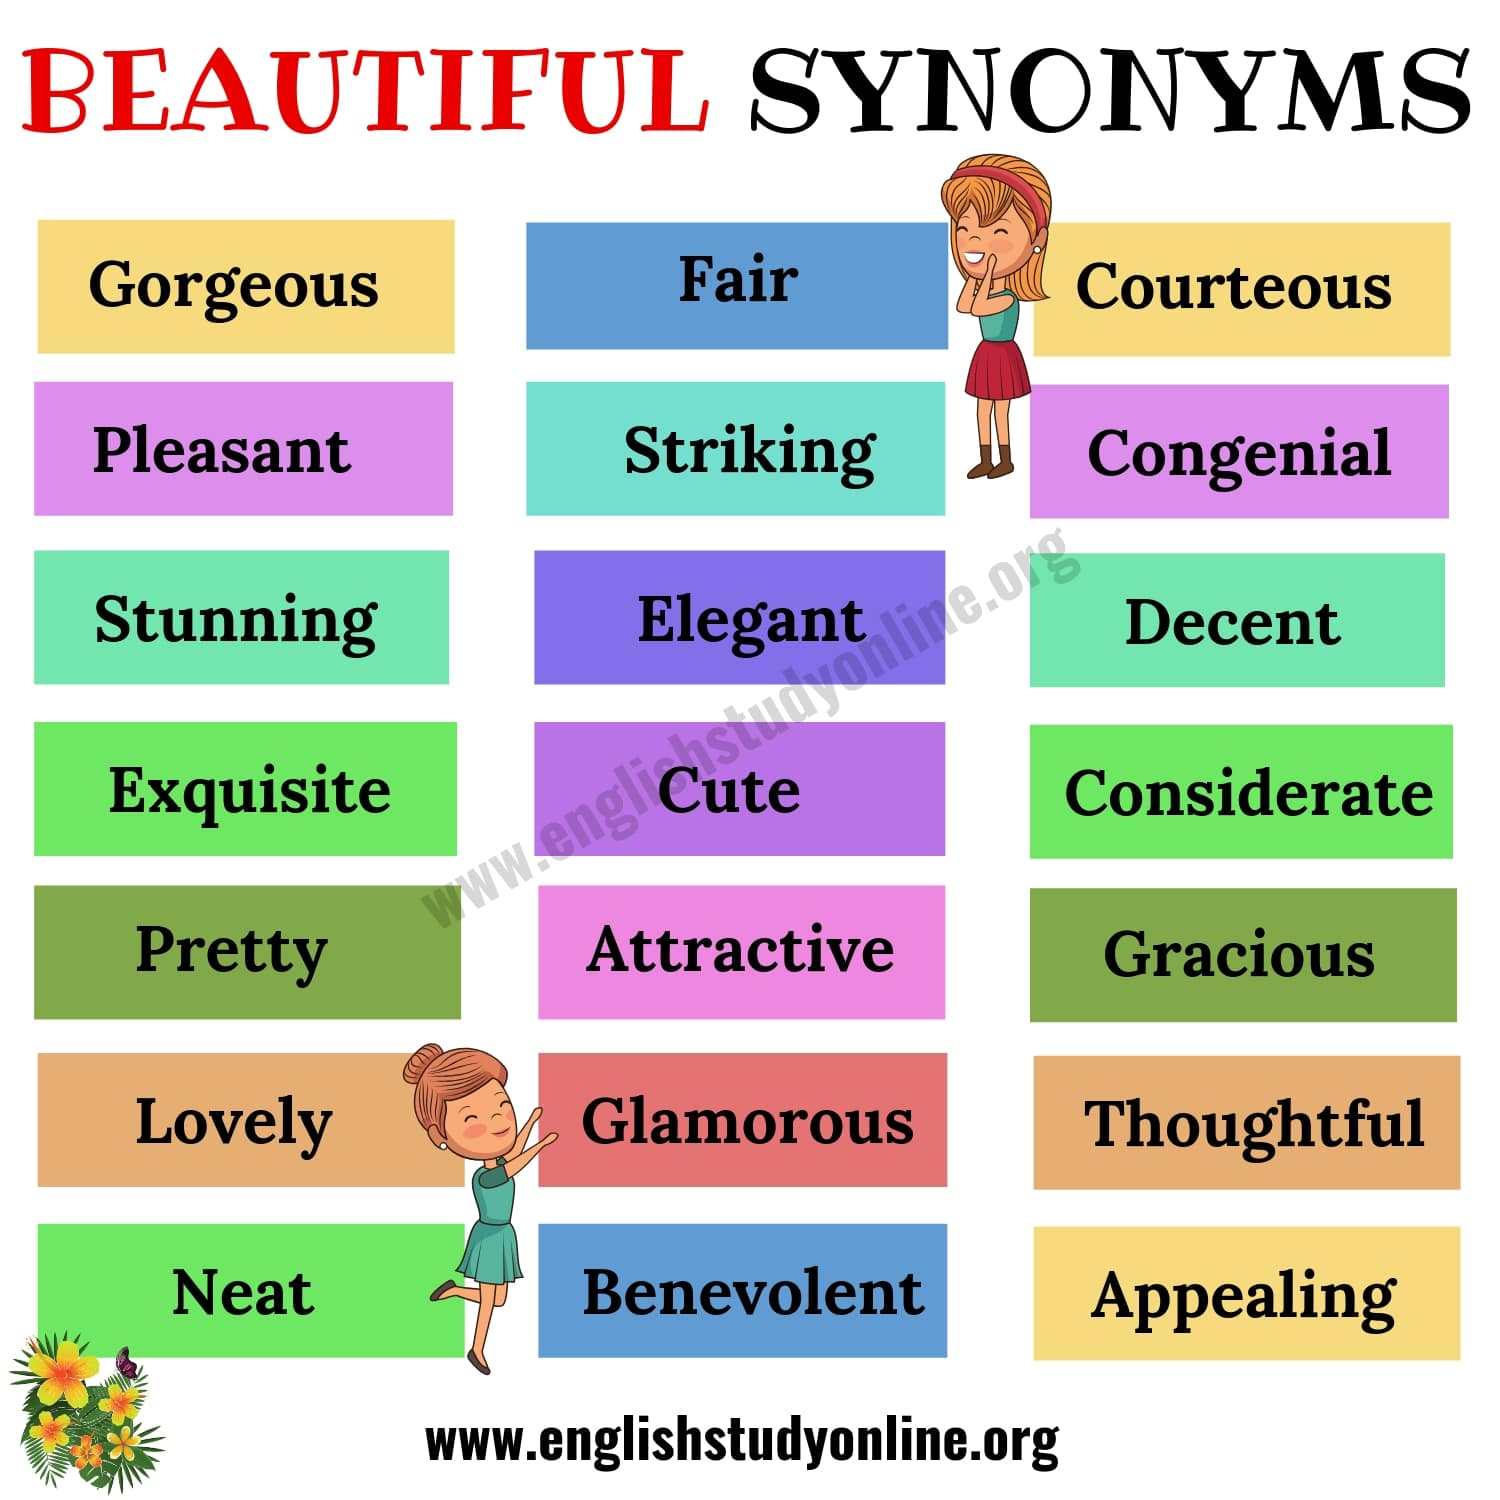 Beautiful Synonyms | List of 30+ Helpful Synonyms for